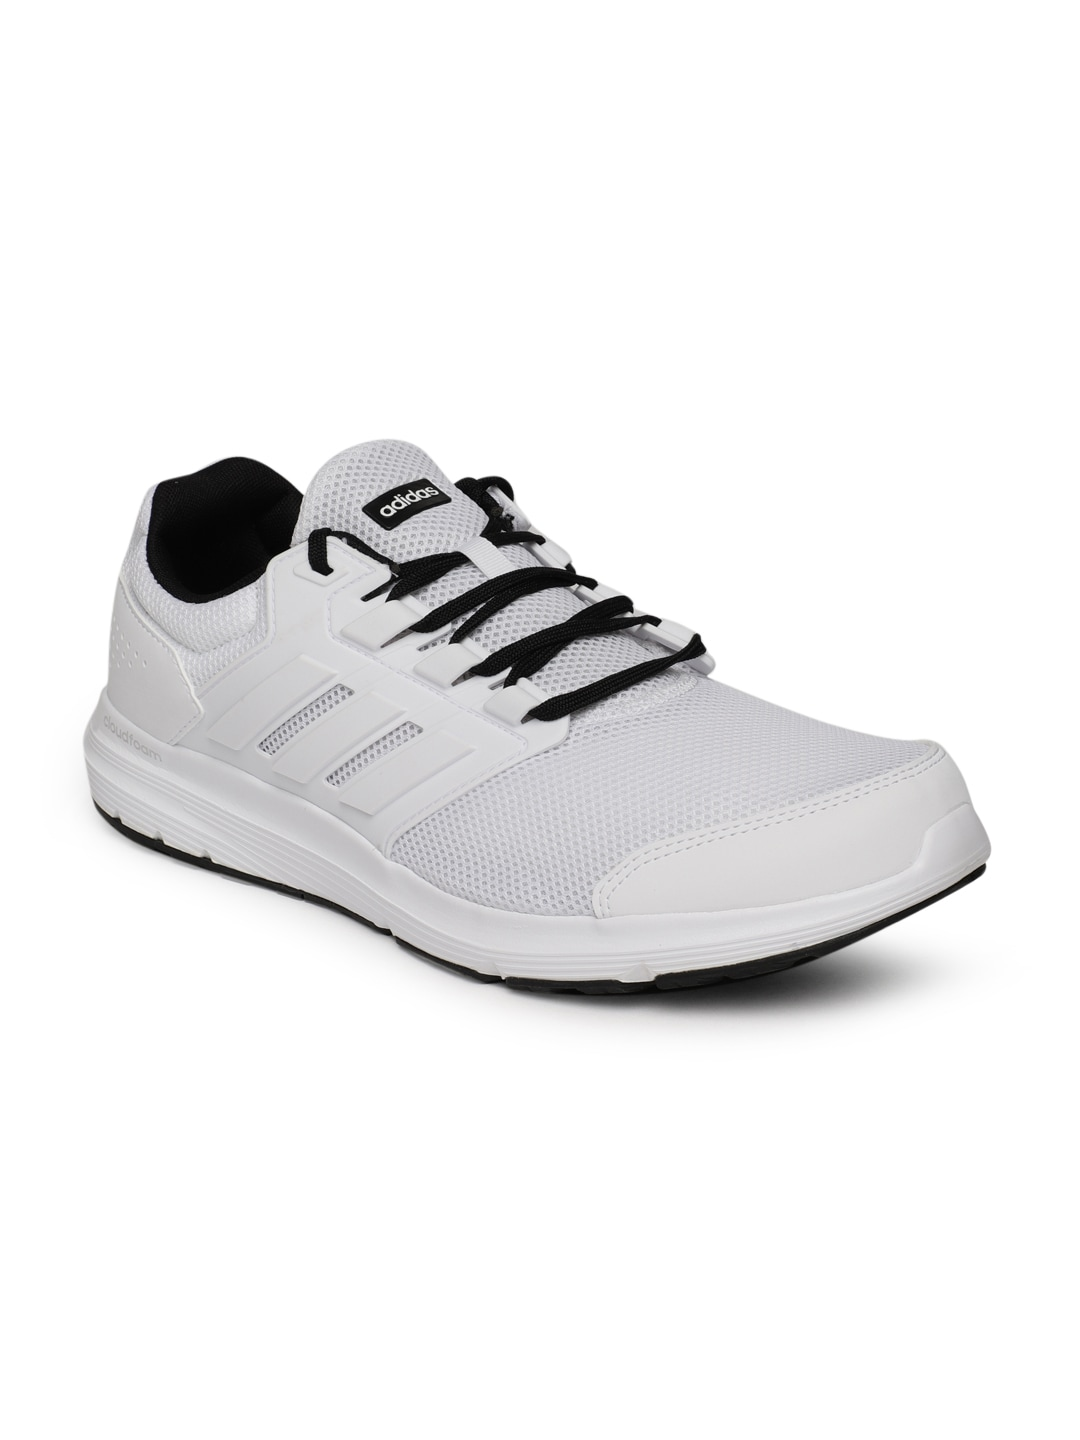 29d8a628484eb5 Adidas Men Adipure Trainer M - Buy Adidas Men Adipure Trainer M online in  India